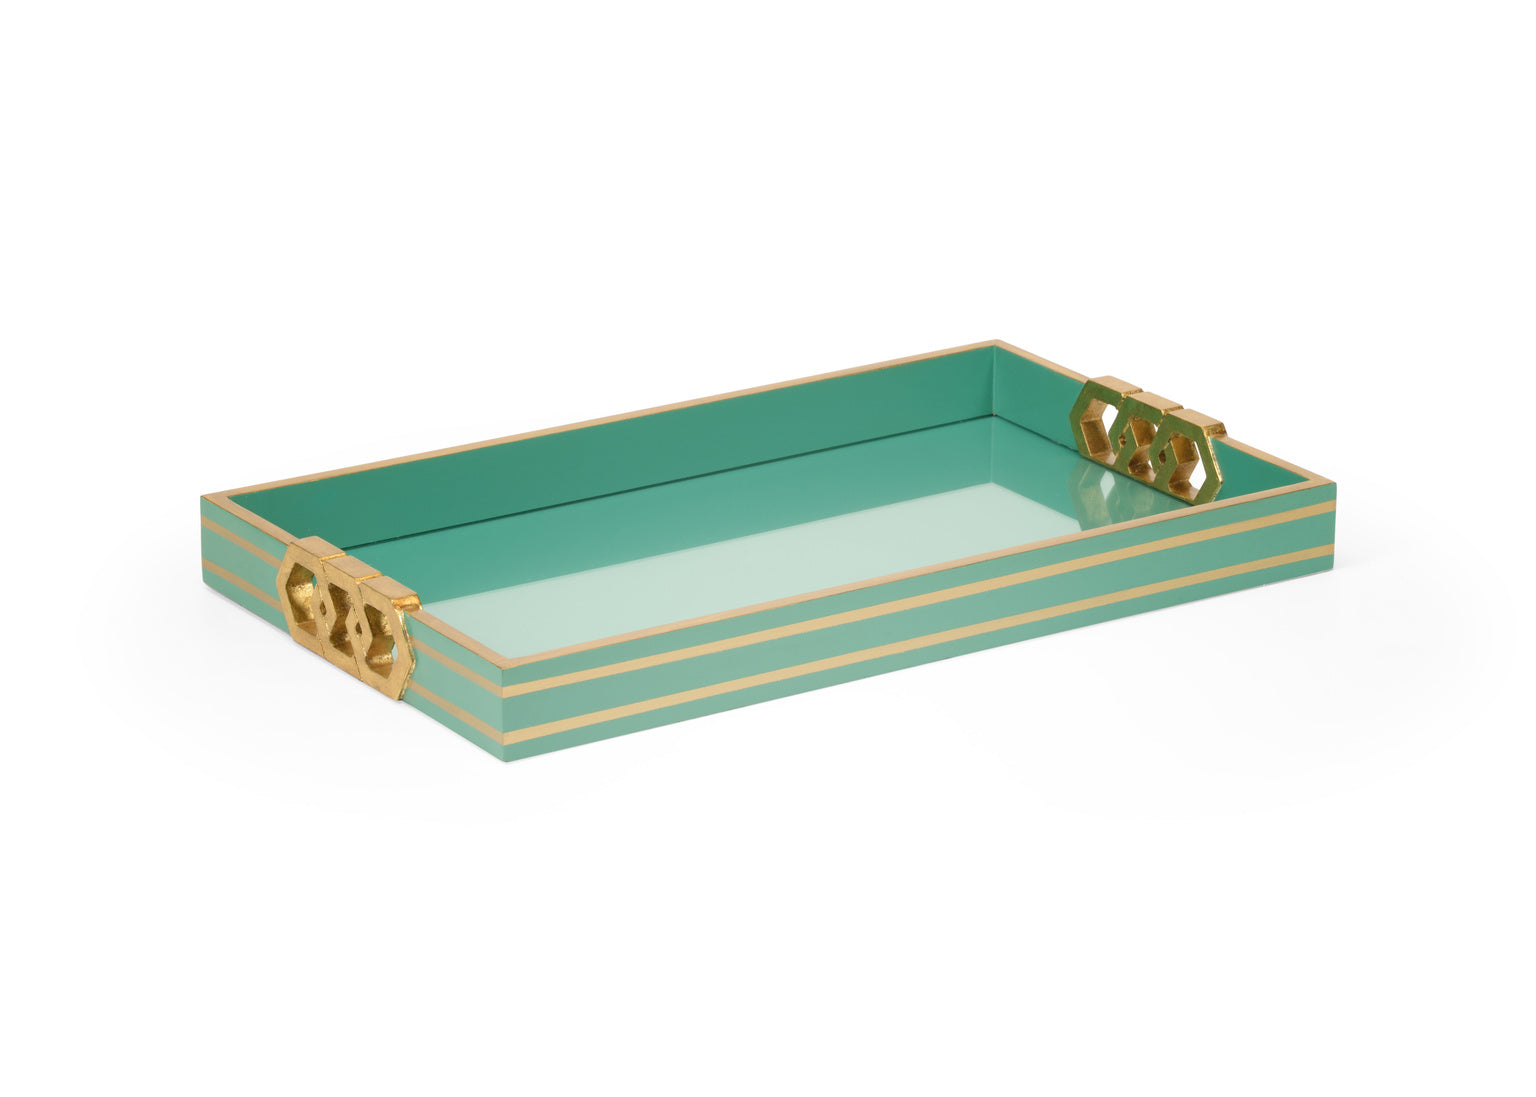 Shayla Copas Serving Tray - Alexandrit 384803